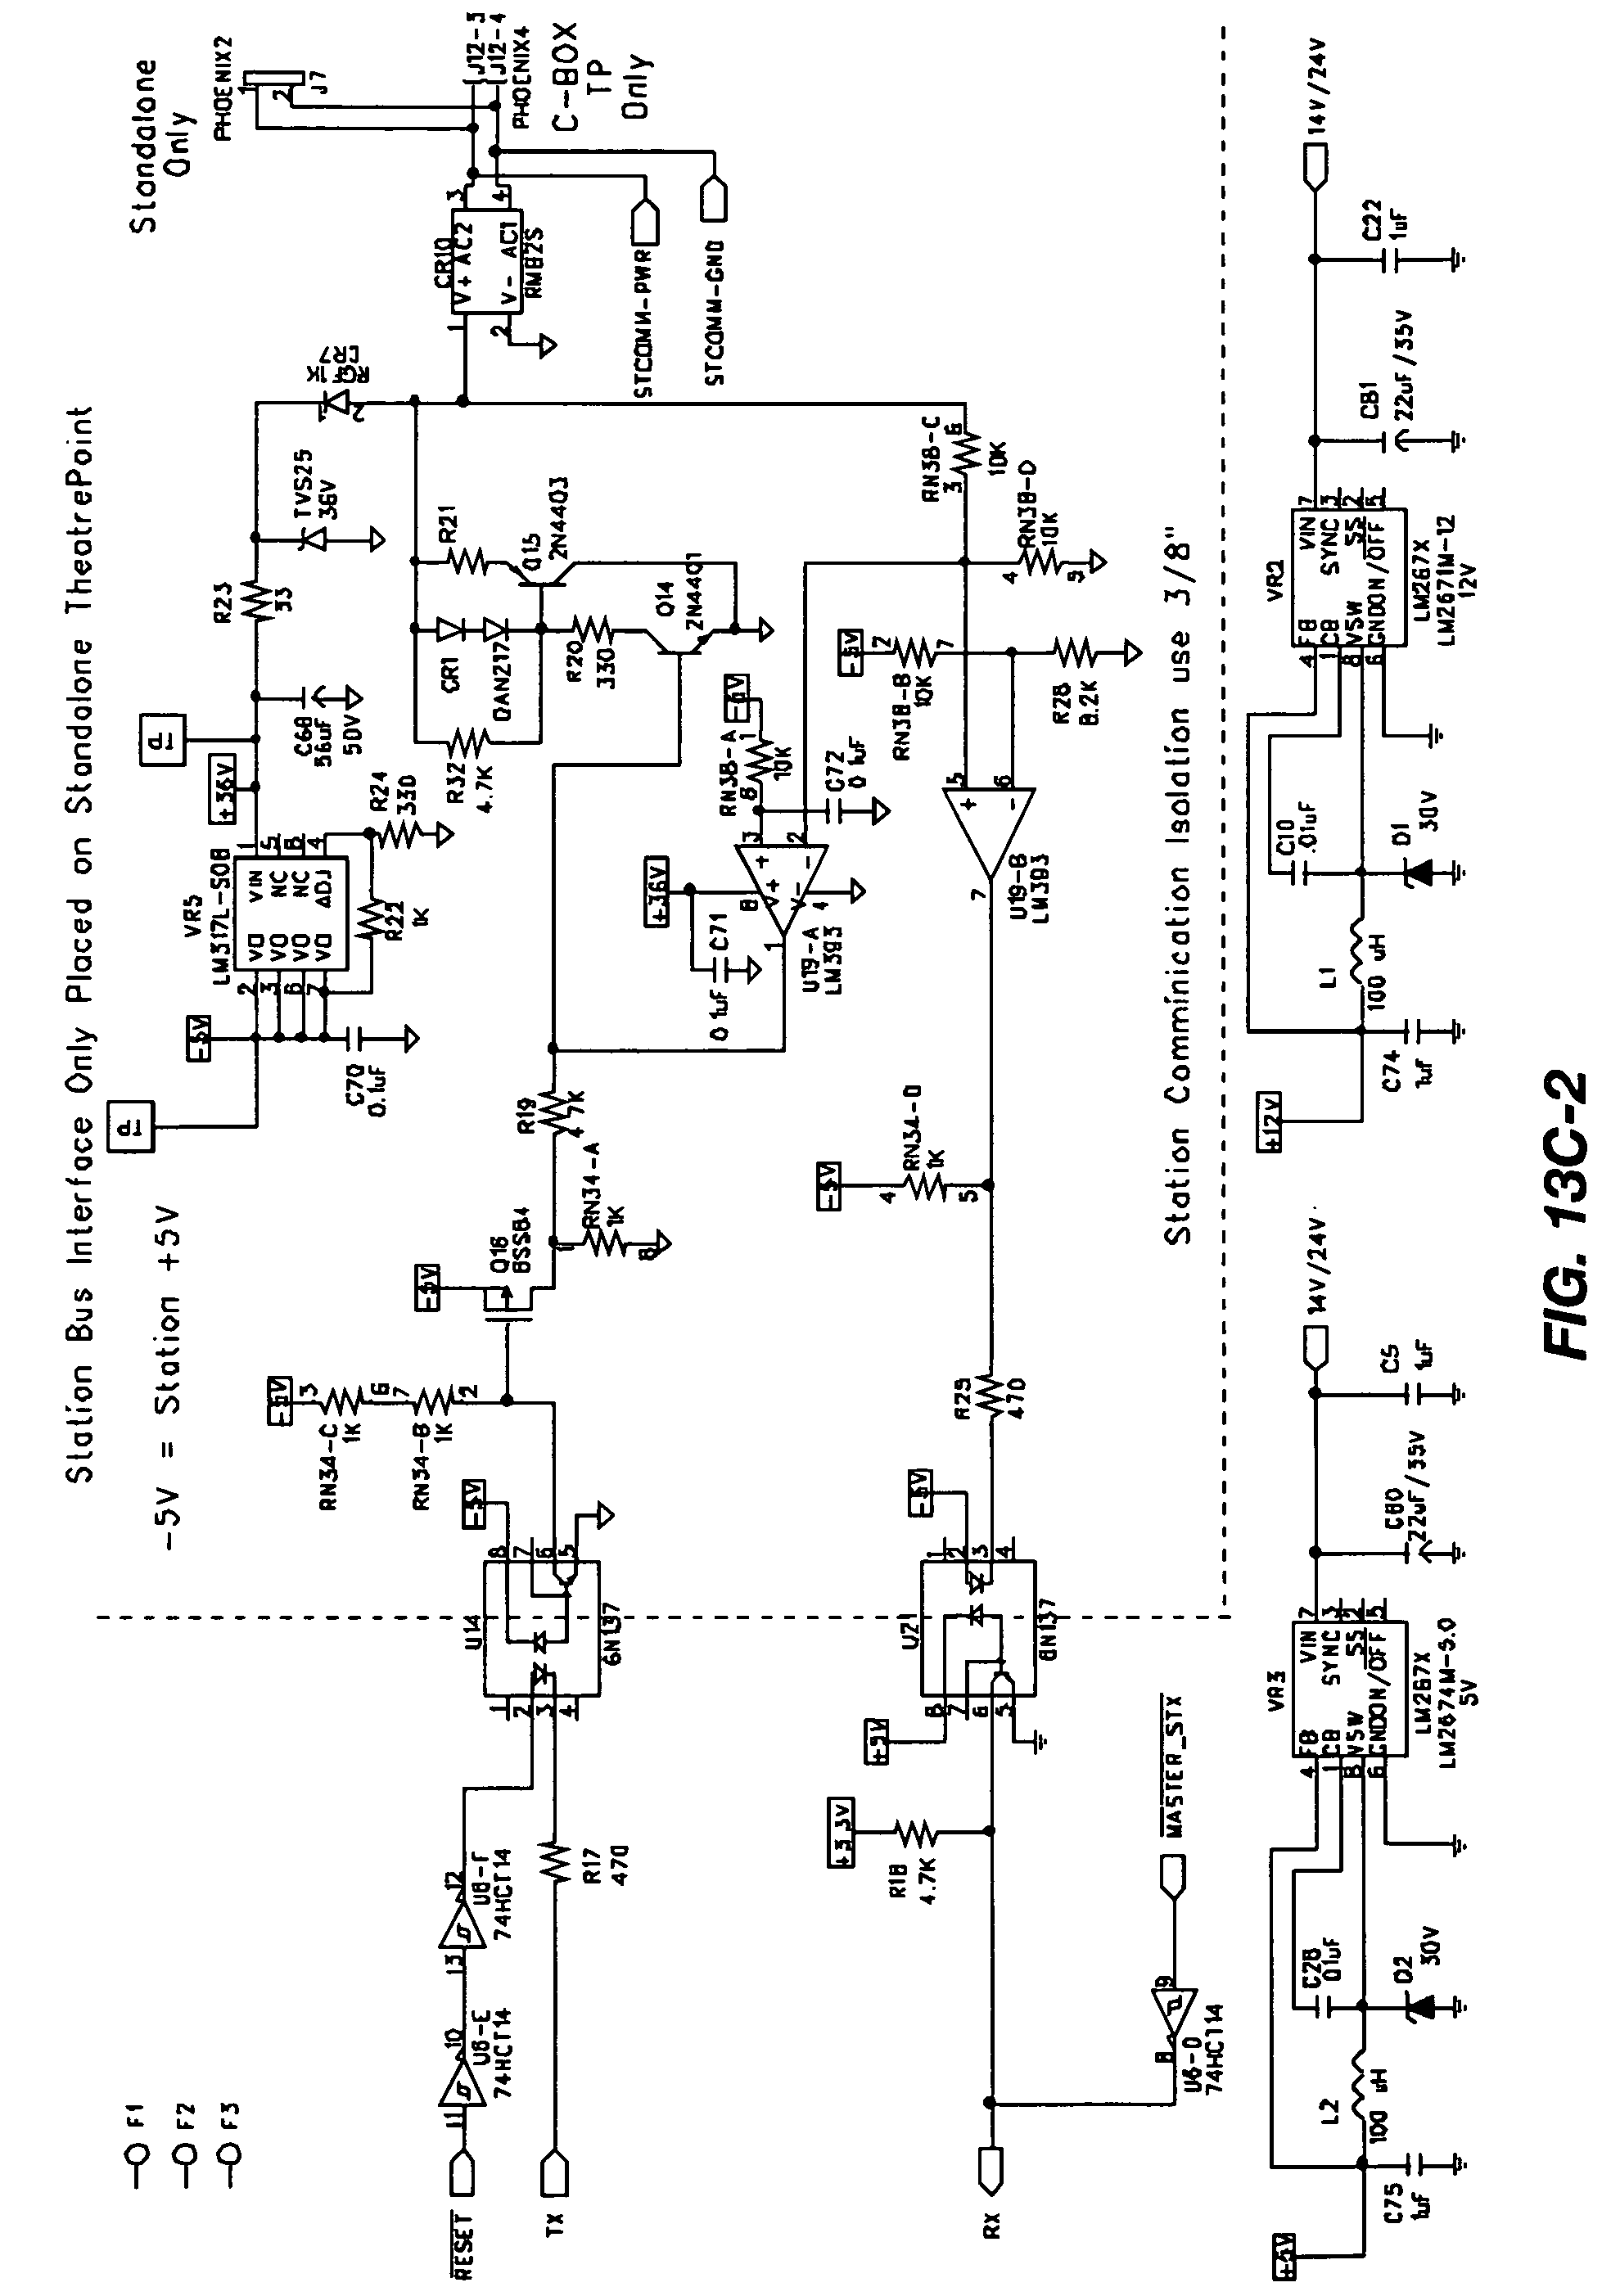 Legrand P3100 Wiring Diagram